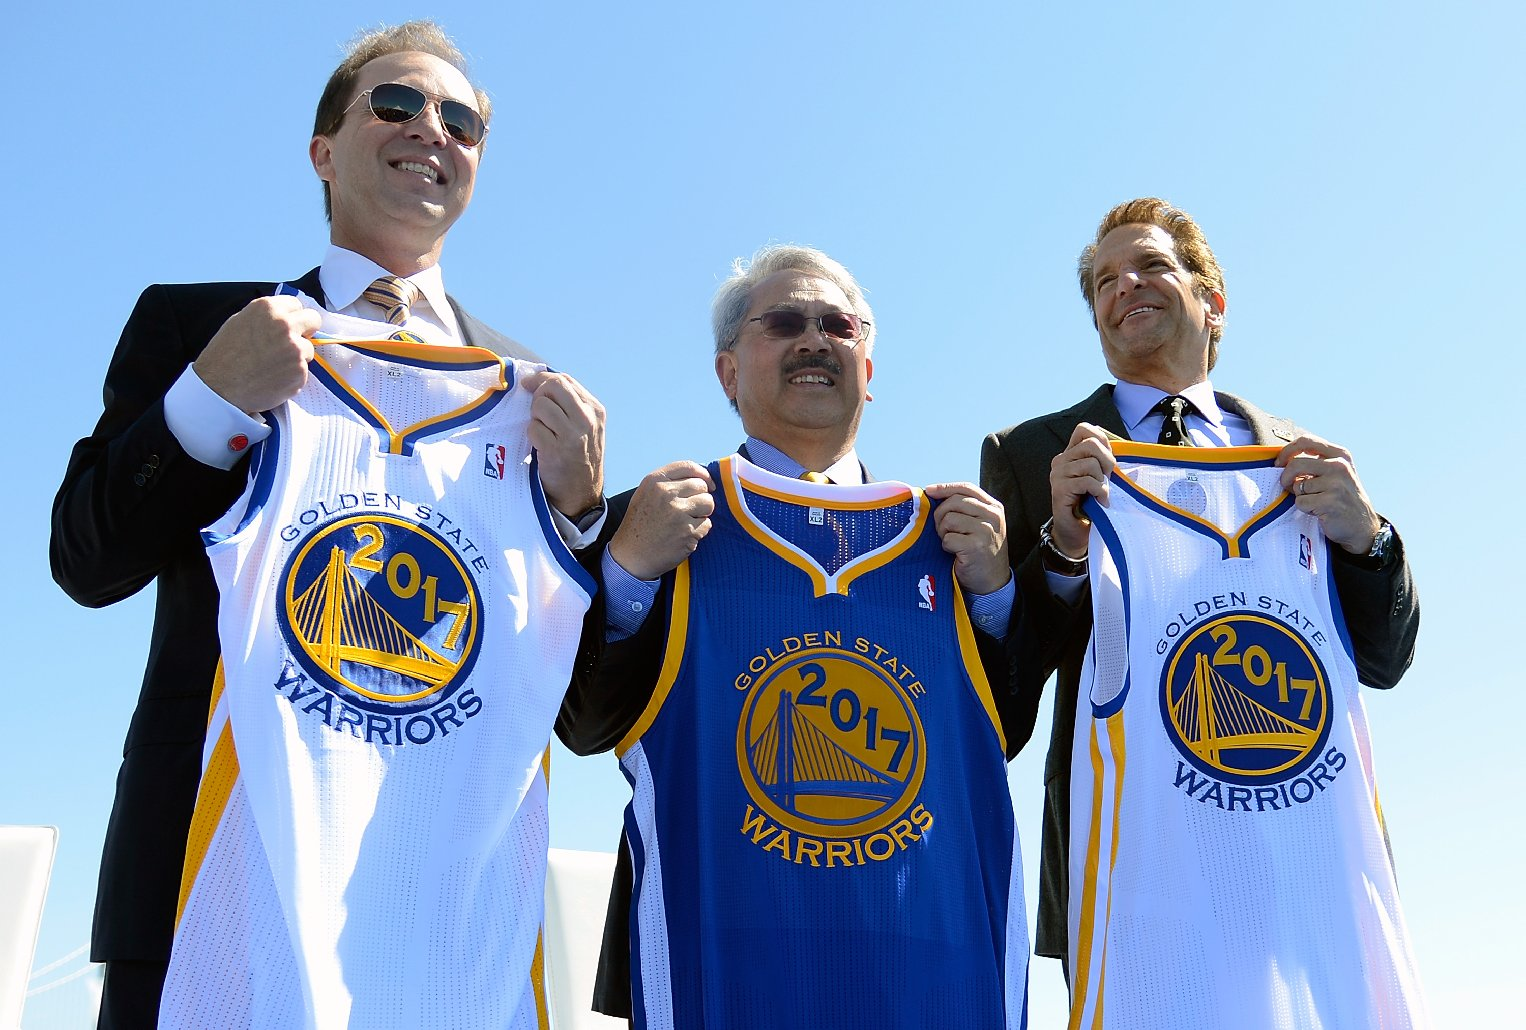 Co-Executive Chairman & CEO, Golden State Warriors Joe Lacob, San Francisco Mayor Edwin M. Lee, and Co-Executive Chairman of the Golden State Warriors Peter Guber poses together for this photo at a press conference. (Co-Executive Chairman & CEO, Golden State Warriors Joe Lacob, San Francisco Mayor Edwin M. Lee, and Co-Executive Chairman of the Golden State Warriors Peter Guber poses together for this photo at a press conference (Thearon W. Henderson/Getty Images)